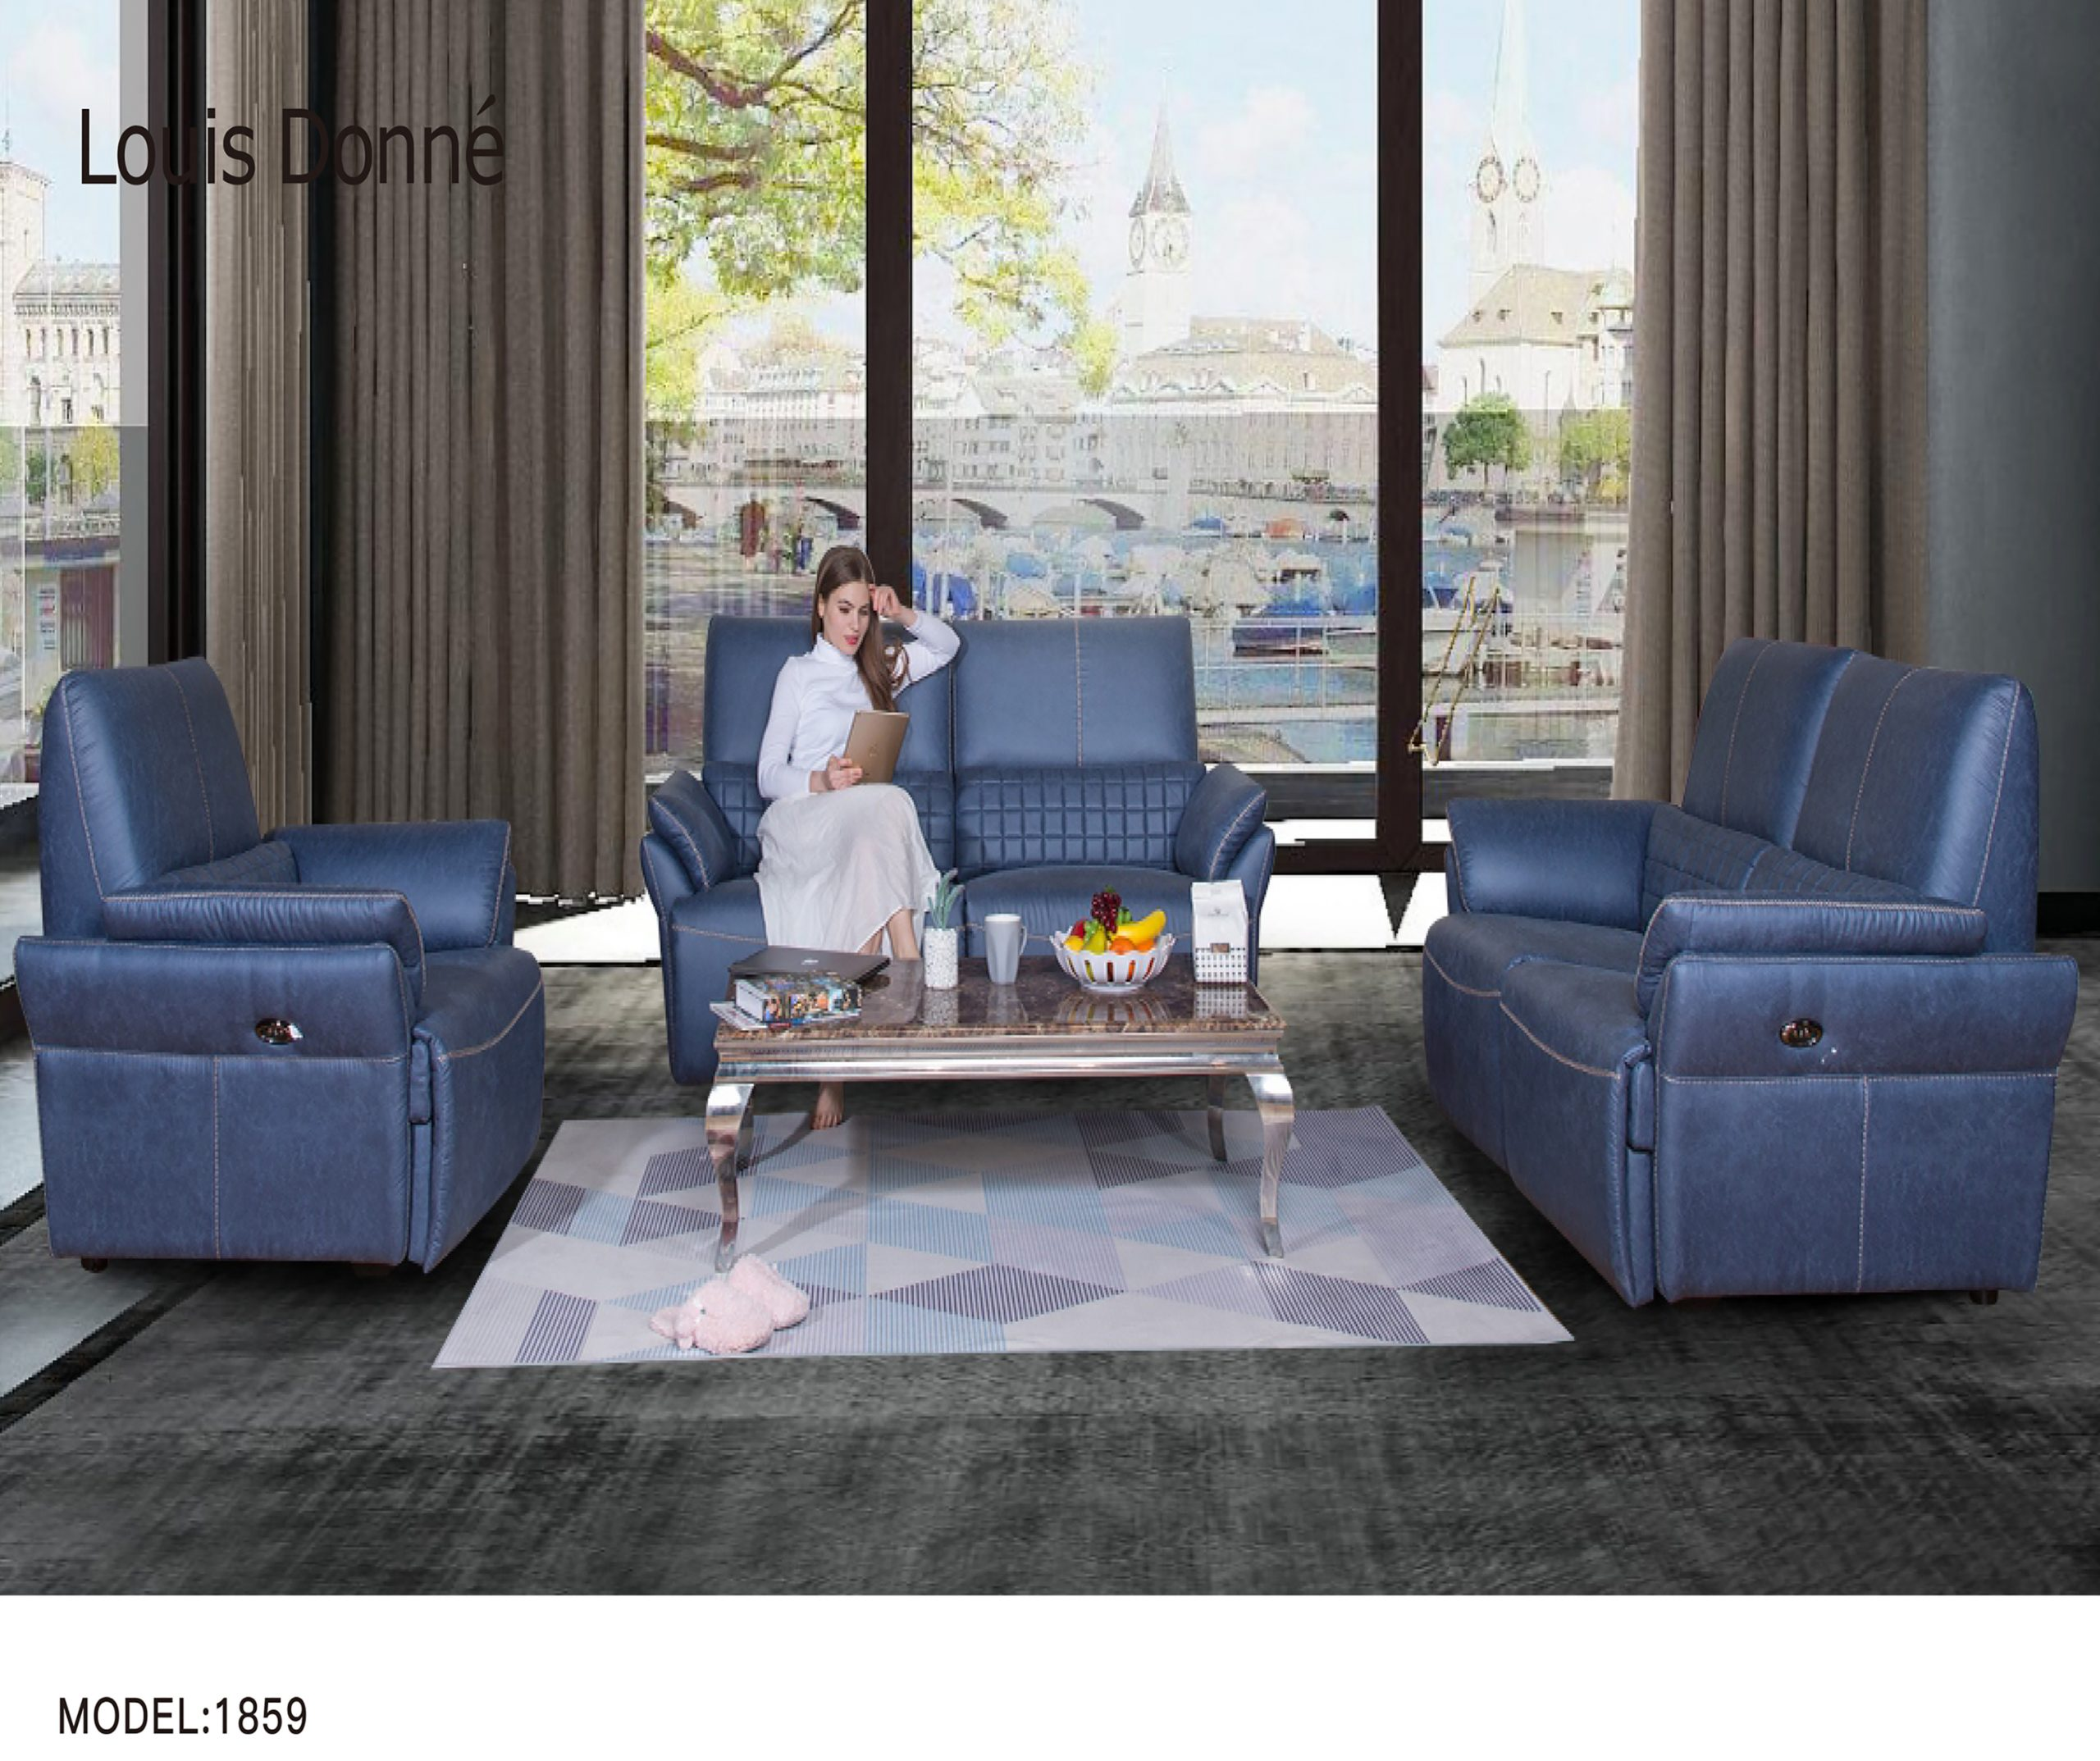 Home fabric sofa placement direction and feng shui (under)